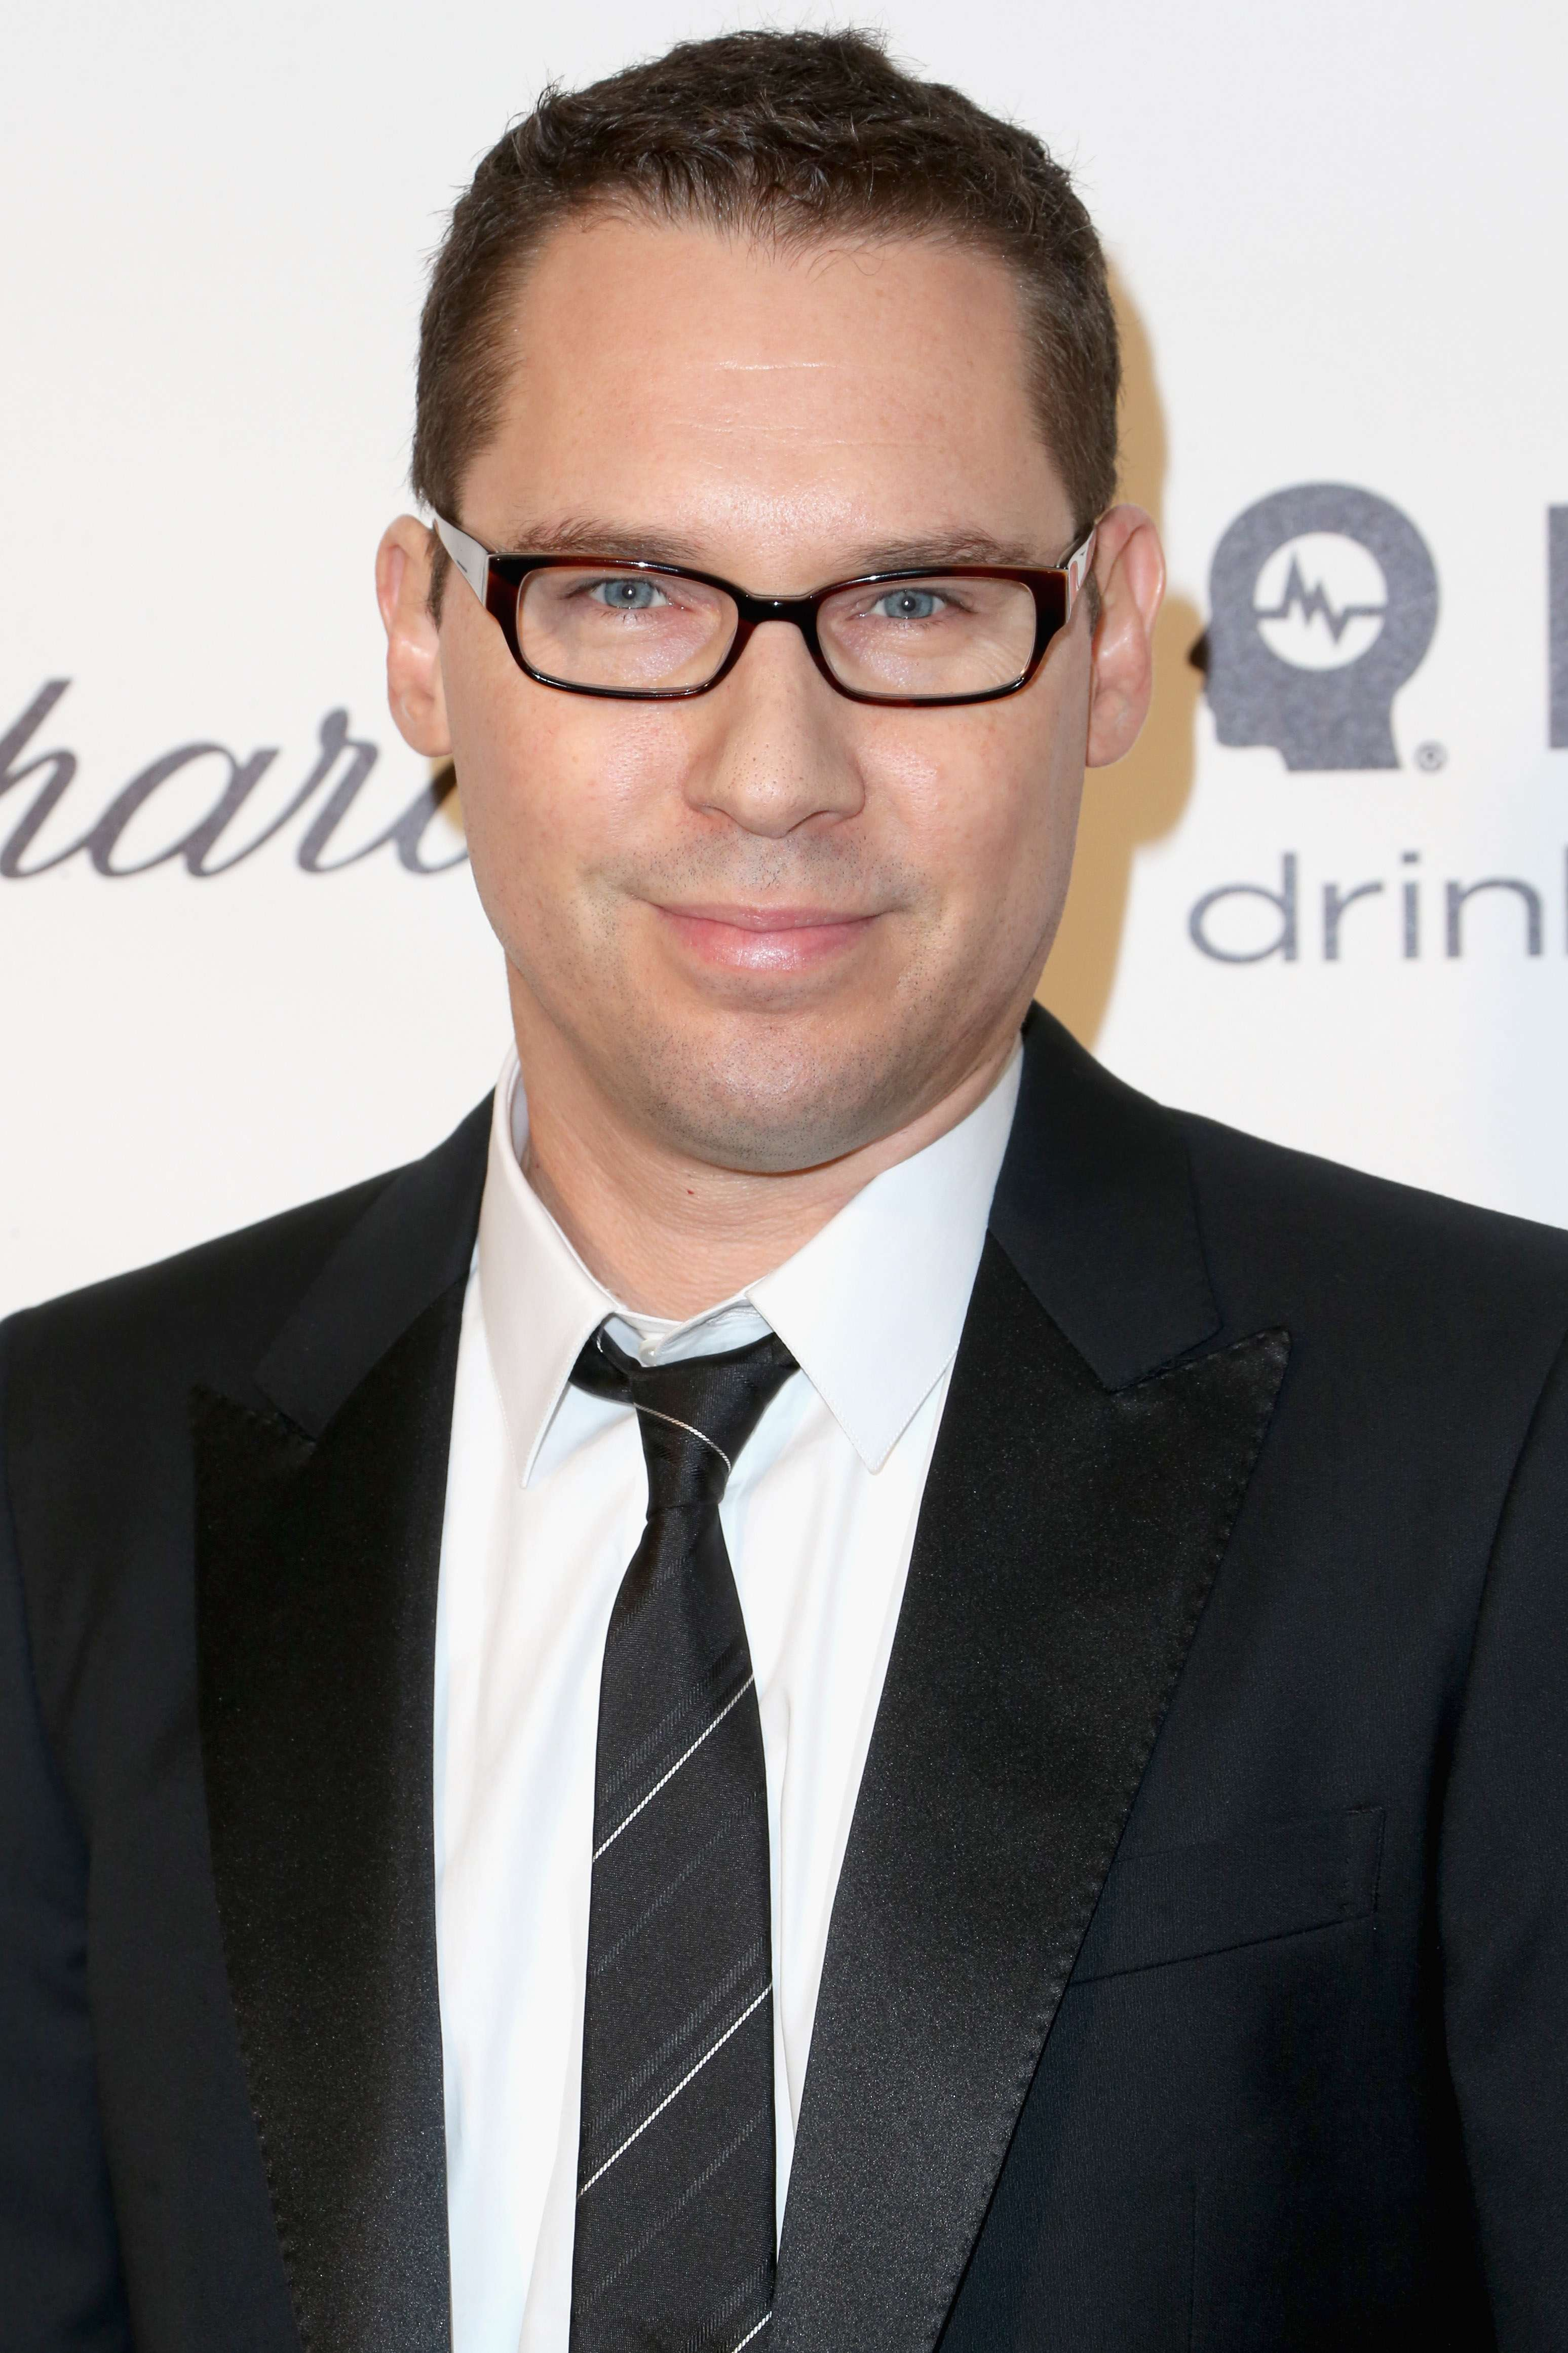 Demandan a director de cine Bryan Singer por abuso sexual